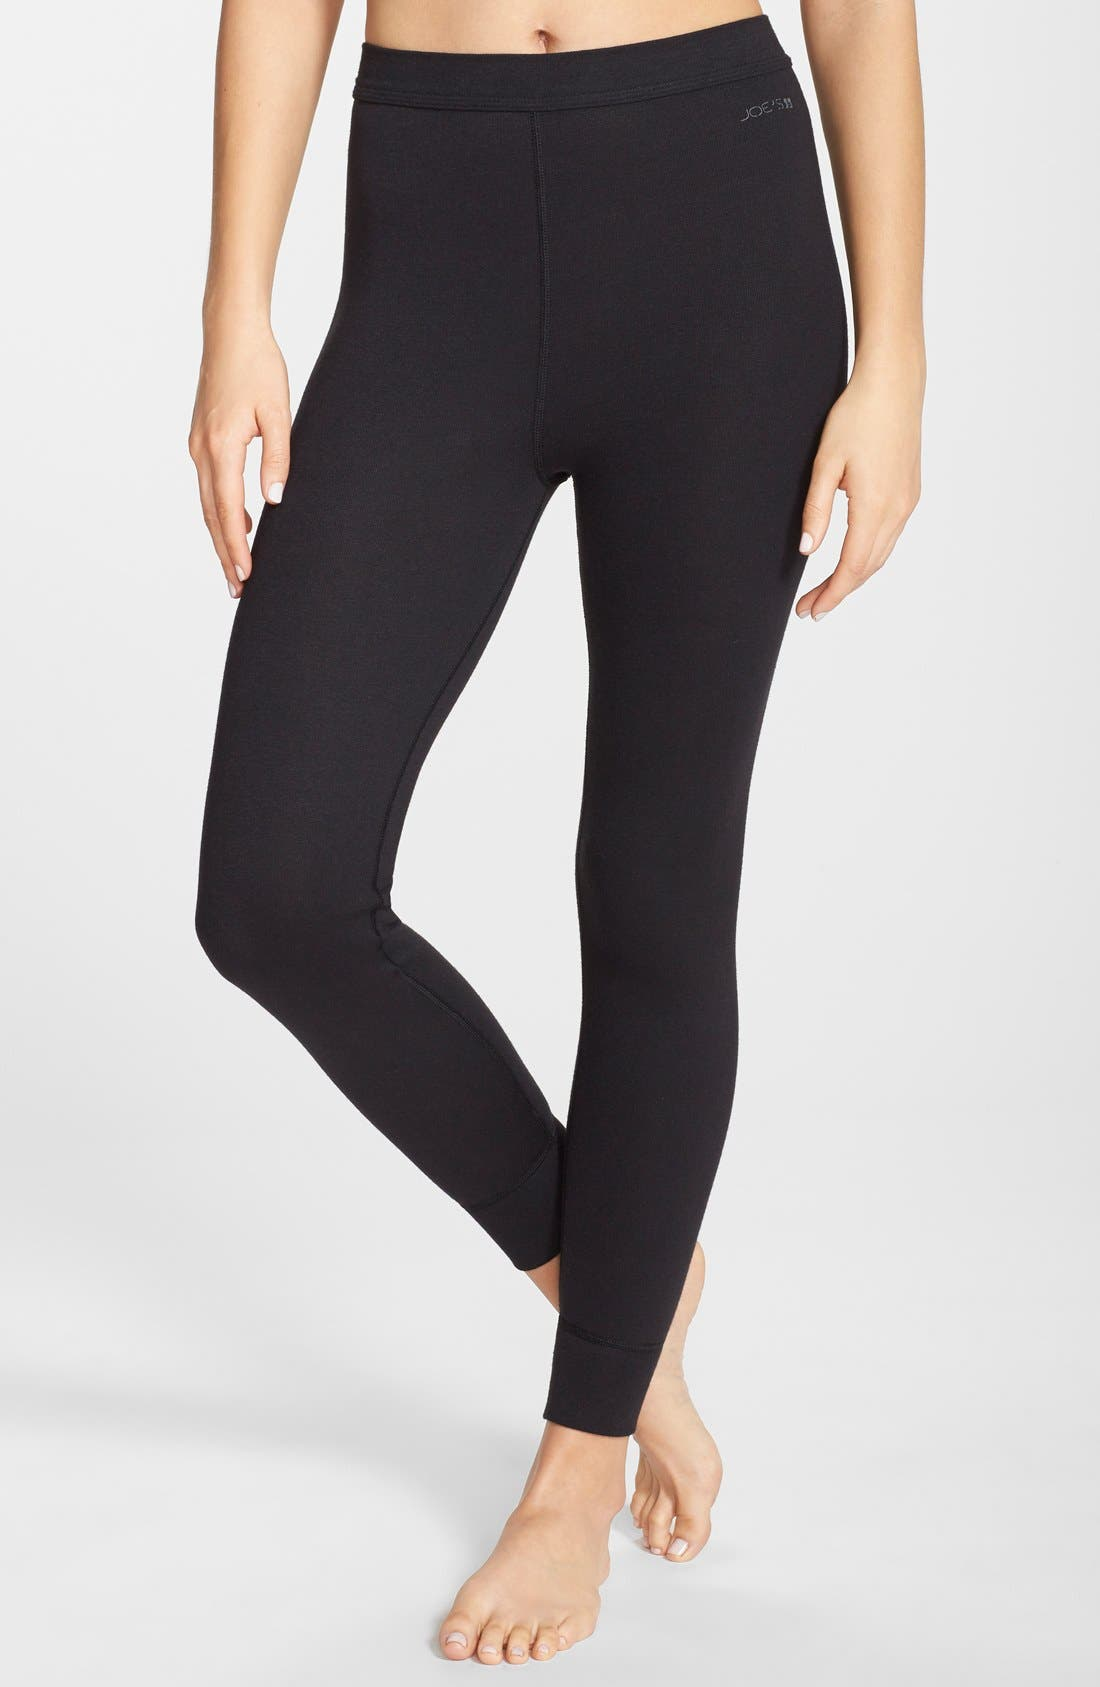 Alternate Image 1 Selected - Joe's 'Cara' Thermal Leggings